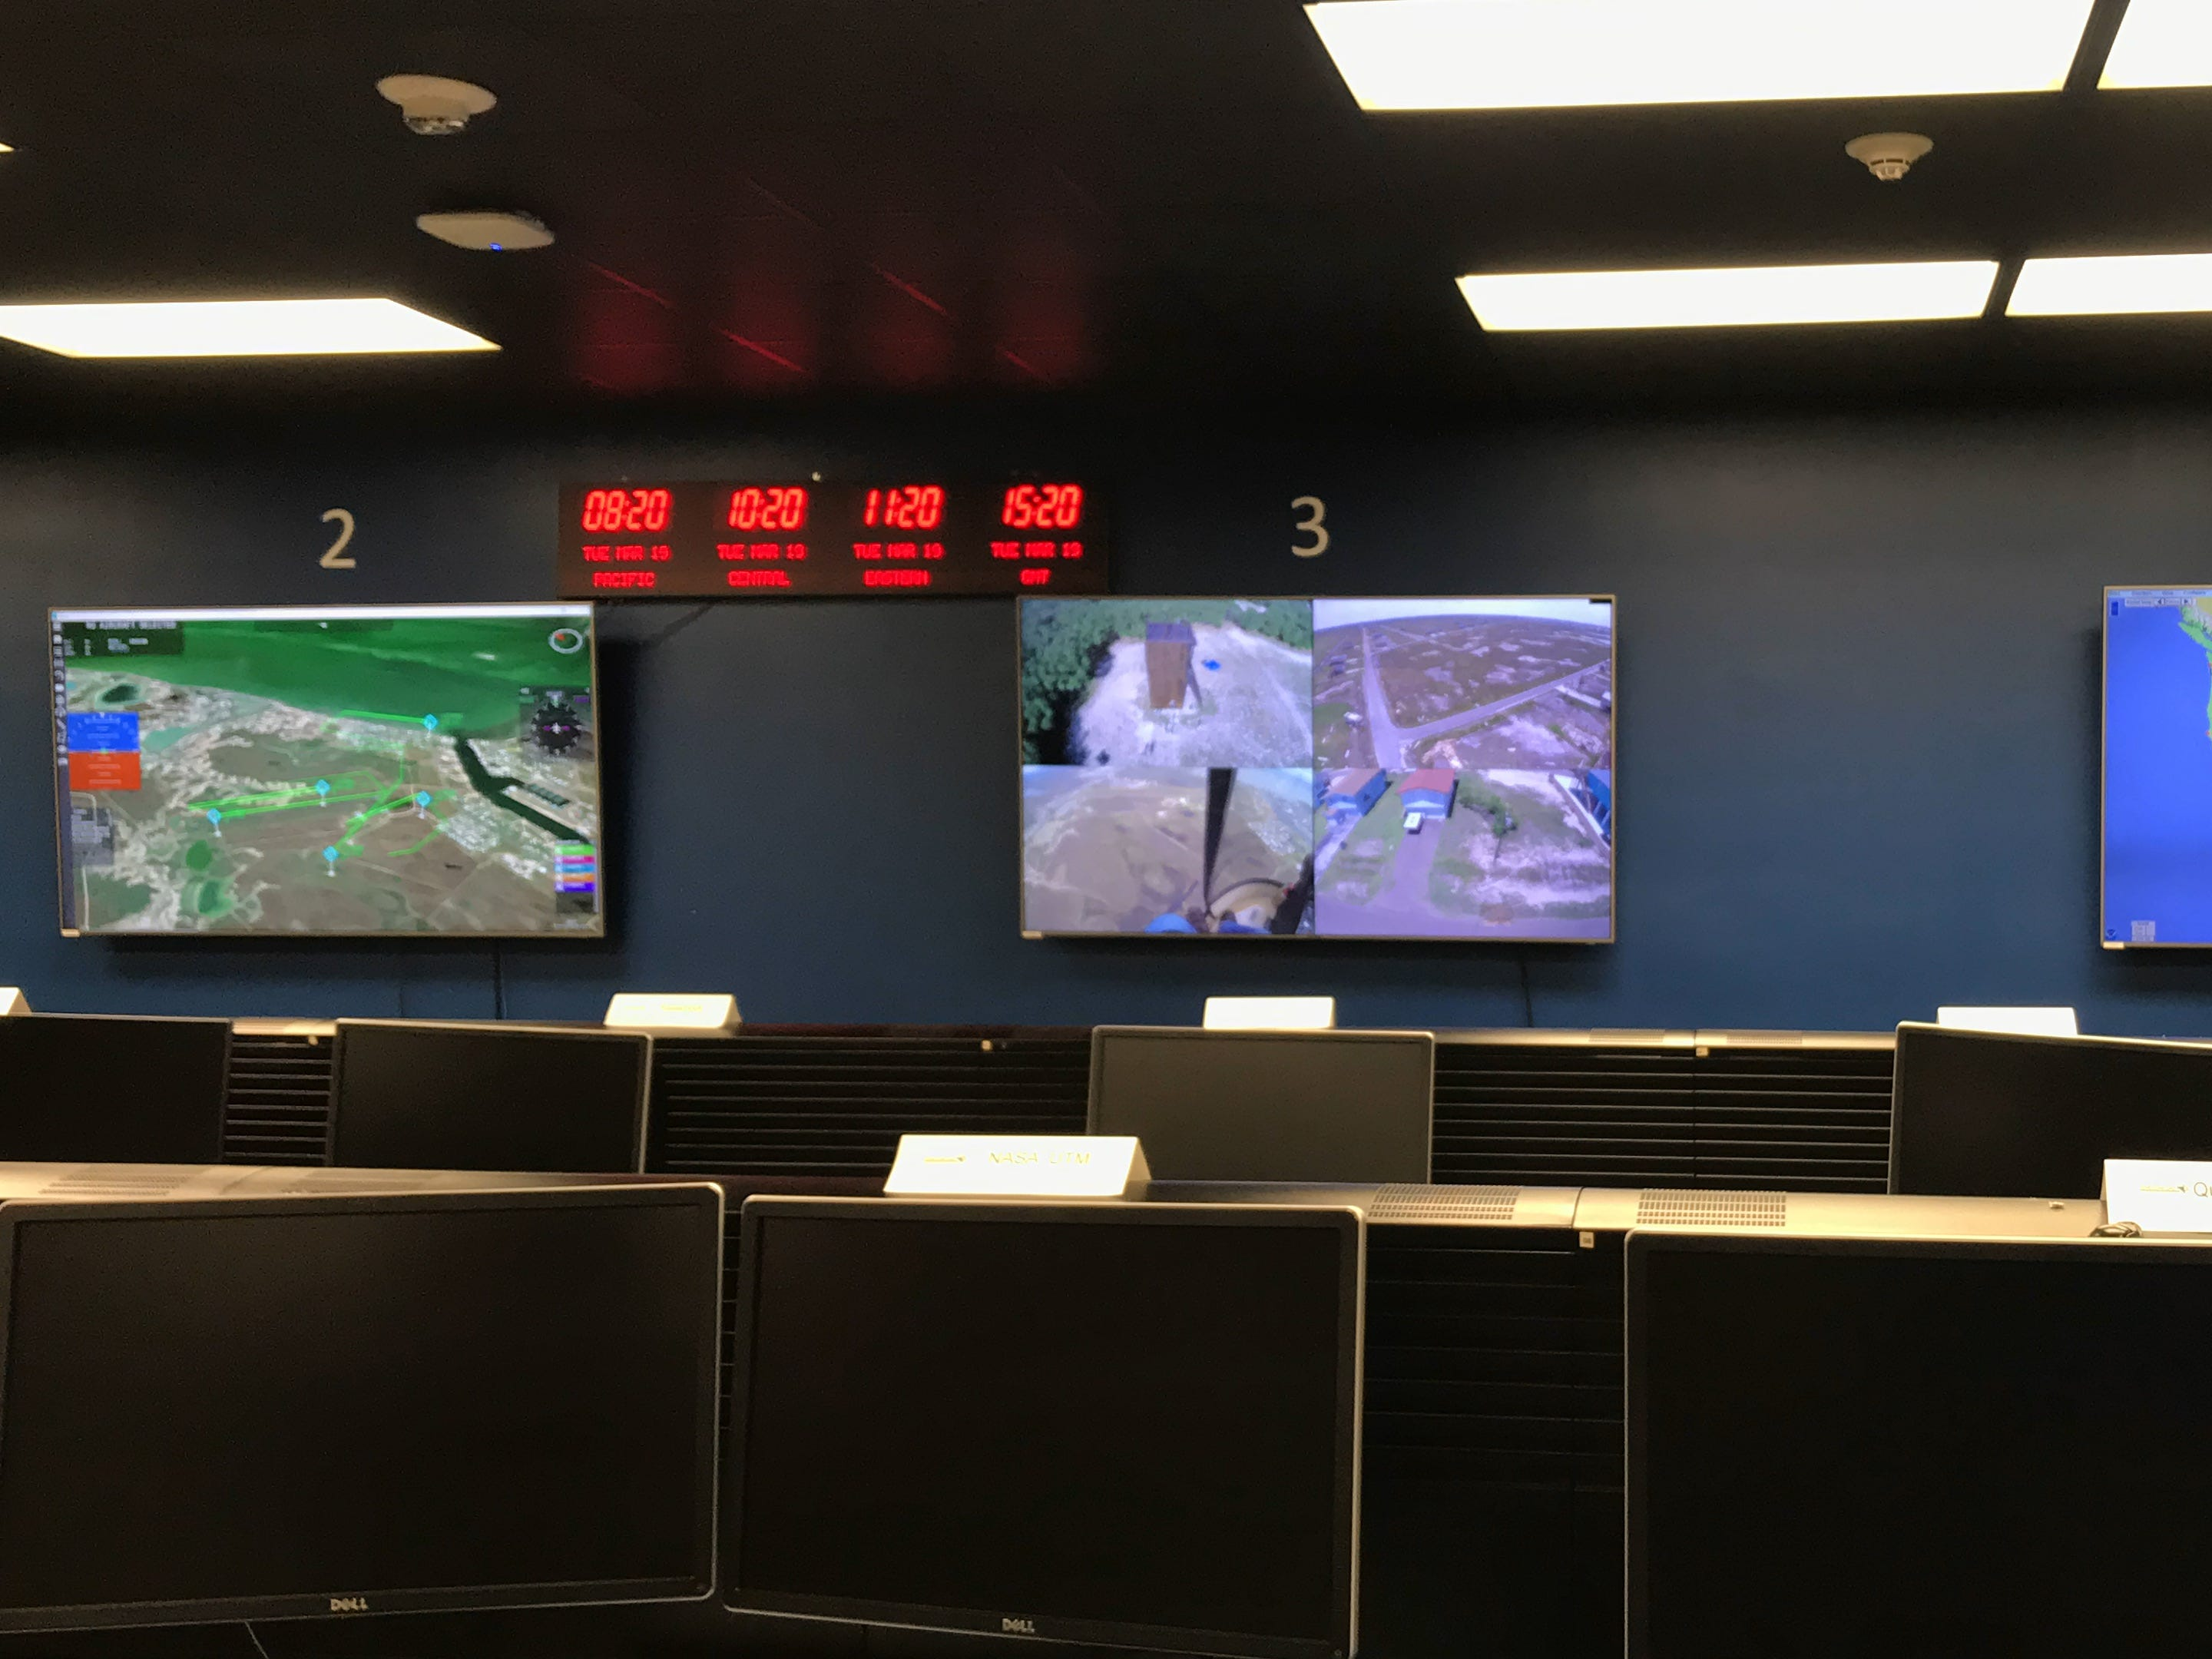 Inside the NASA Mission Control Center at Lone Star UAS Center of Excellence & Innovation at Texas A&M Univeristy - Corpus Christi.